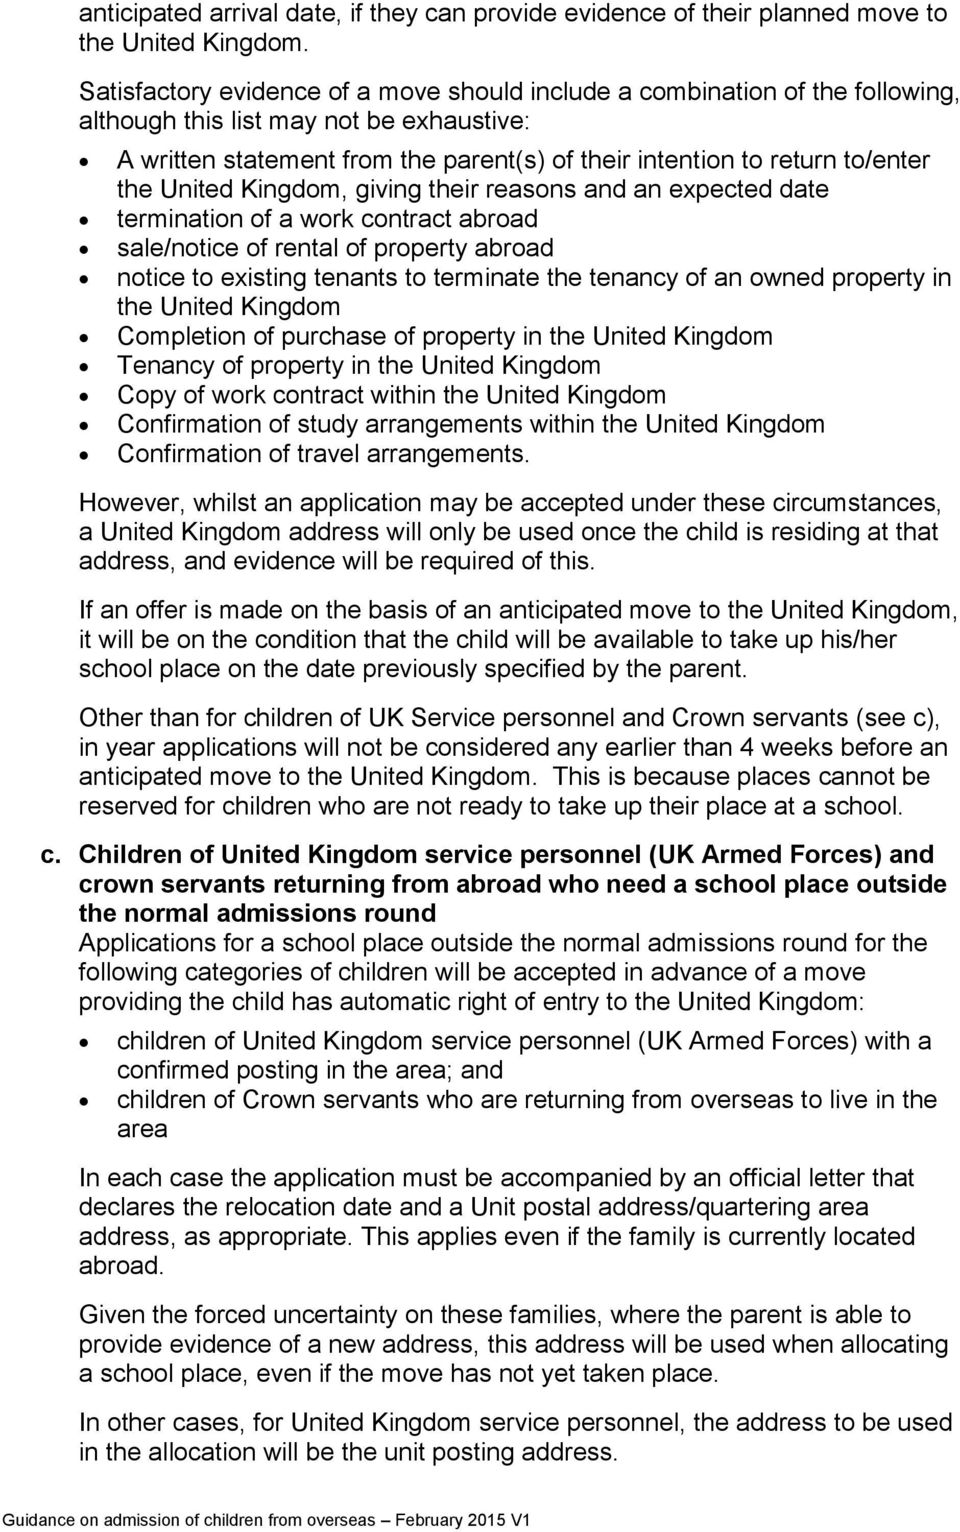 the United Kingdom, giving their reasons and an expected date termination of a work contract abroad sale/notice of rental of property abroad notice to existing tenants to terminate the tenancy of an